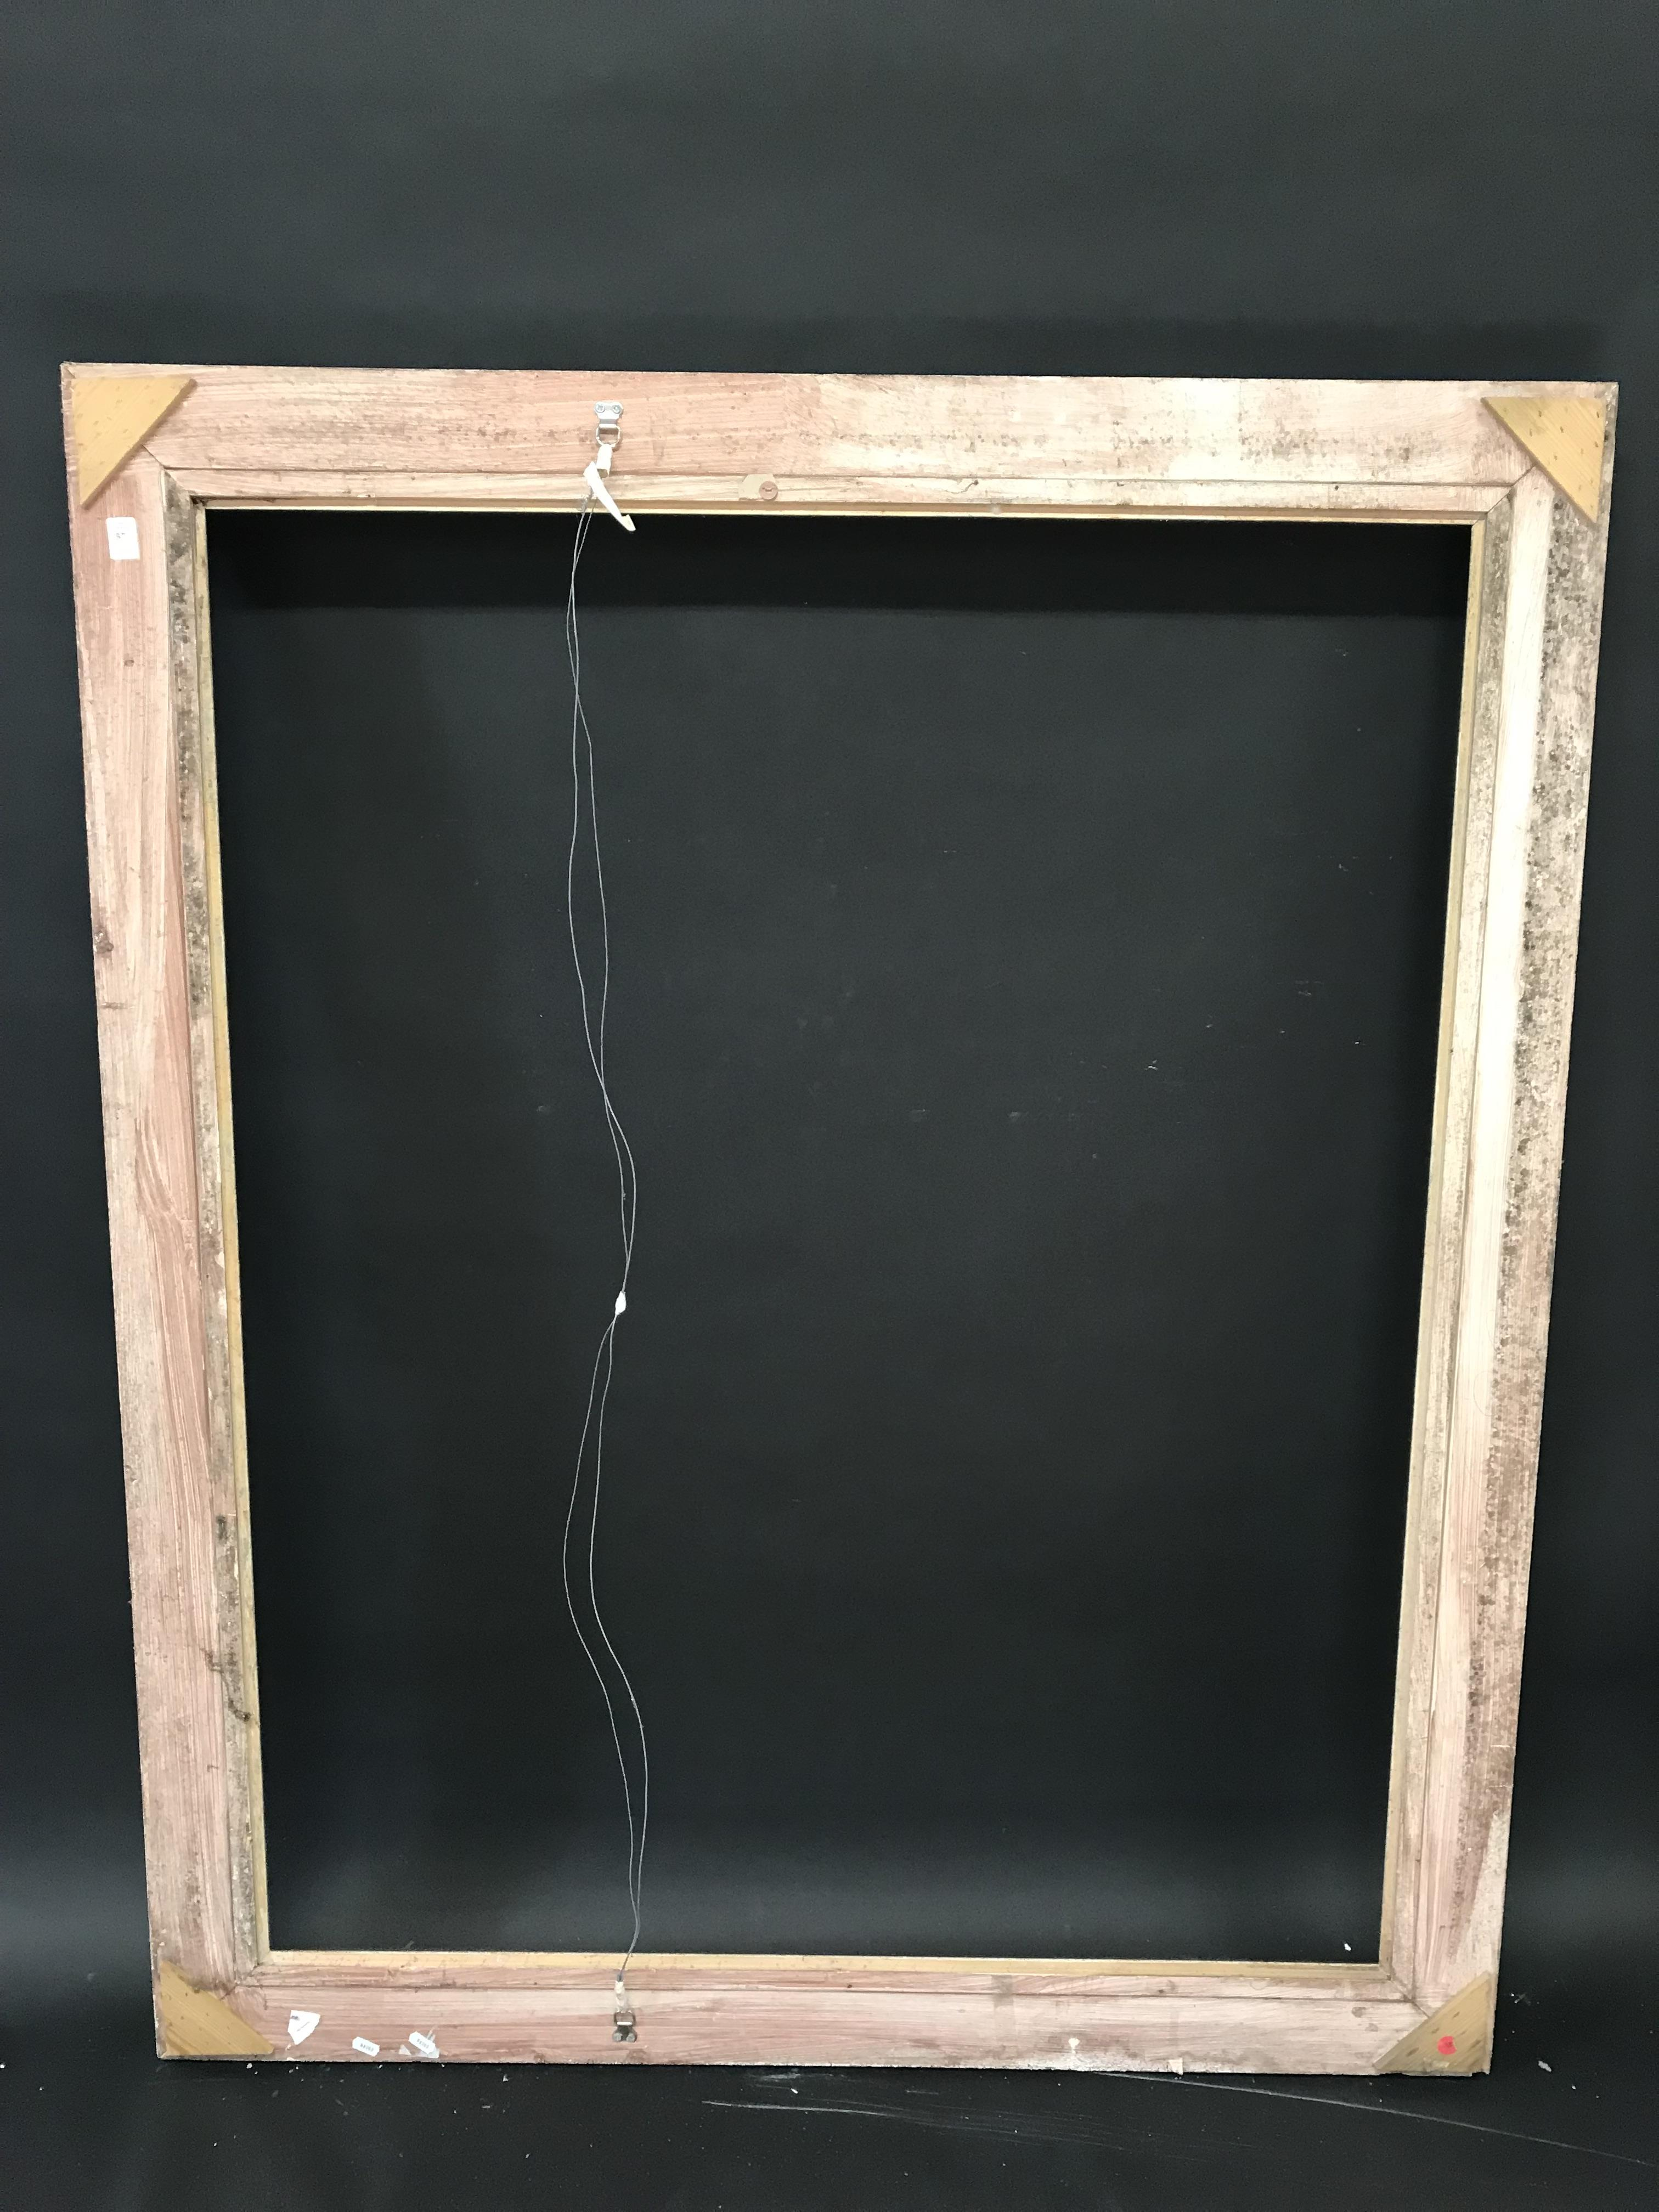 Lot 37 - 20th Century English School. A Painted Composition Frame, with Swept and Pierced Centres and